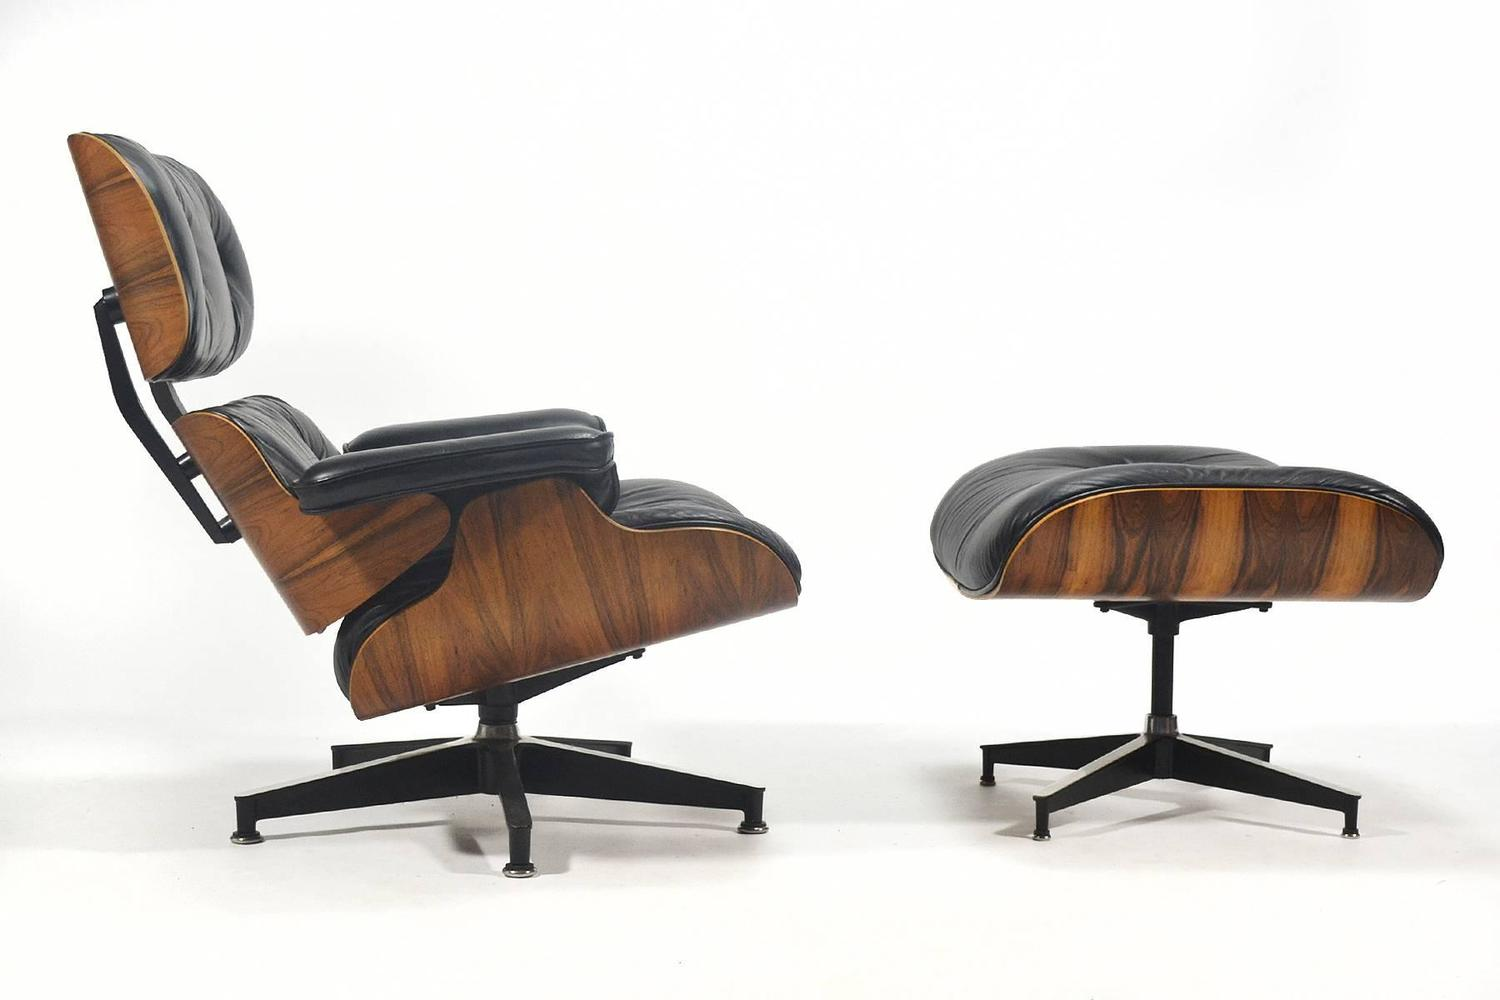 Eames 670 671 lounge chair and ottoman by herman miller - Herman miller lounge chair and ottoman ...